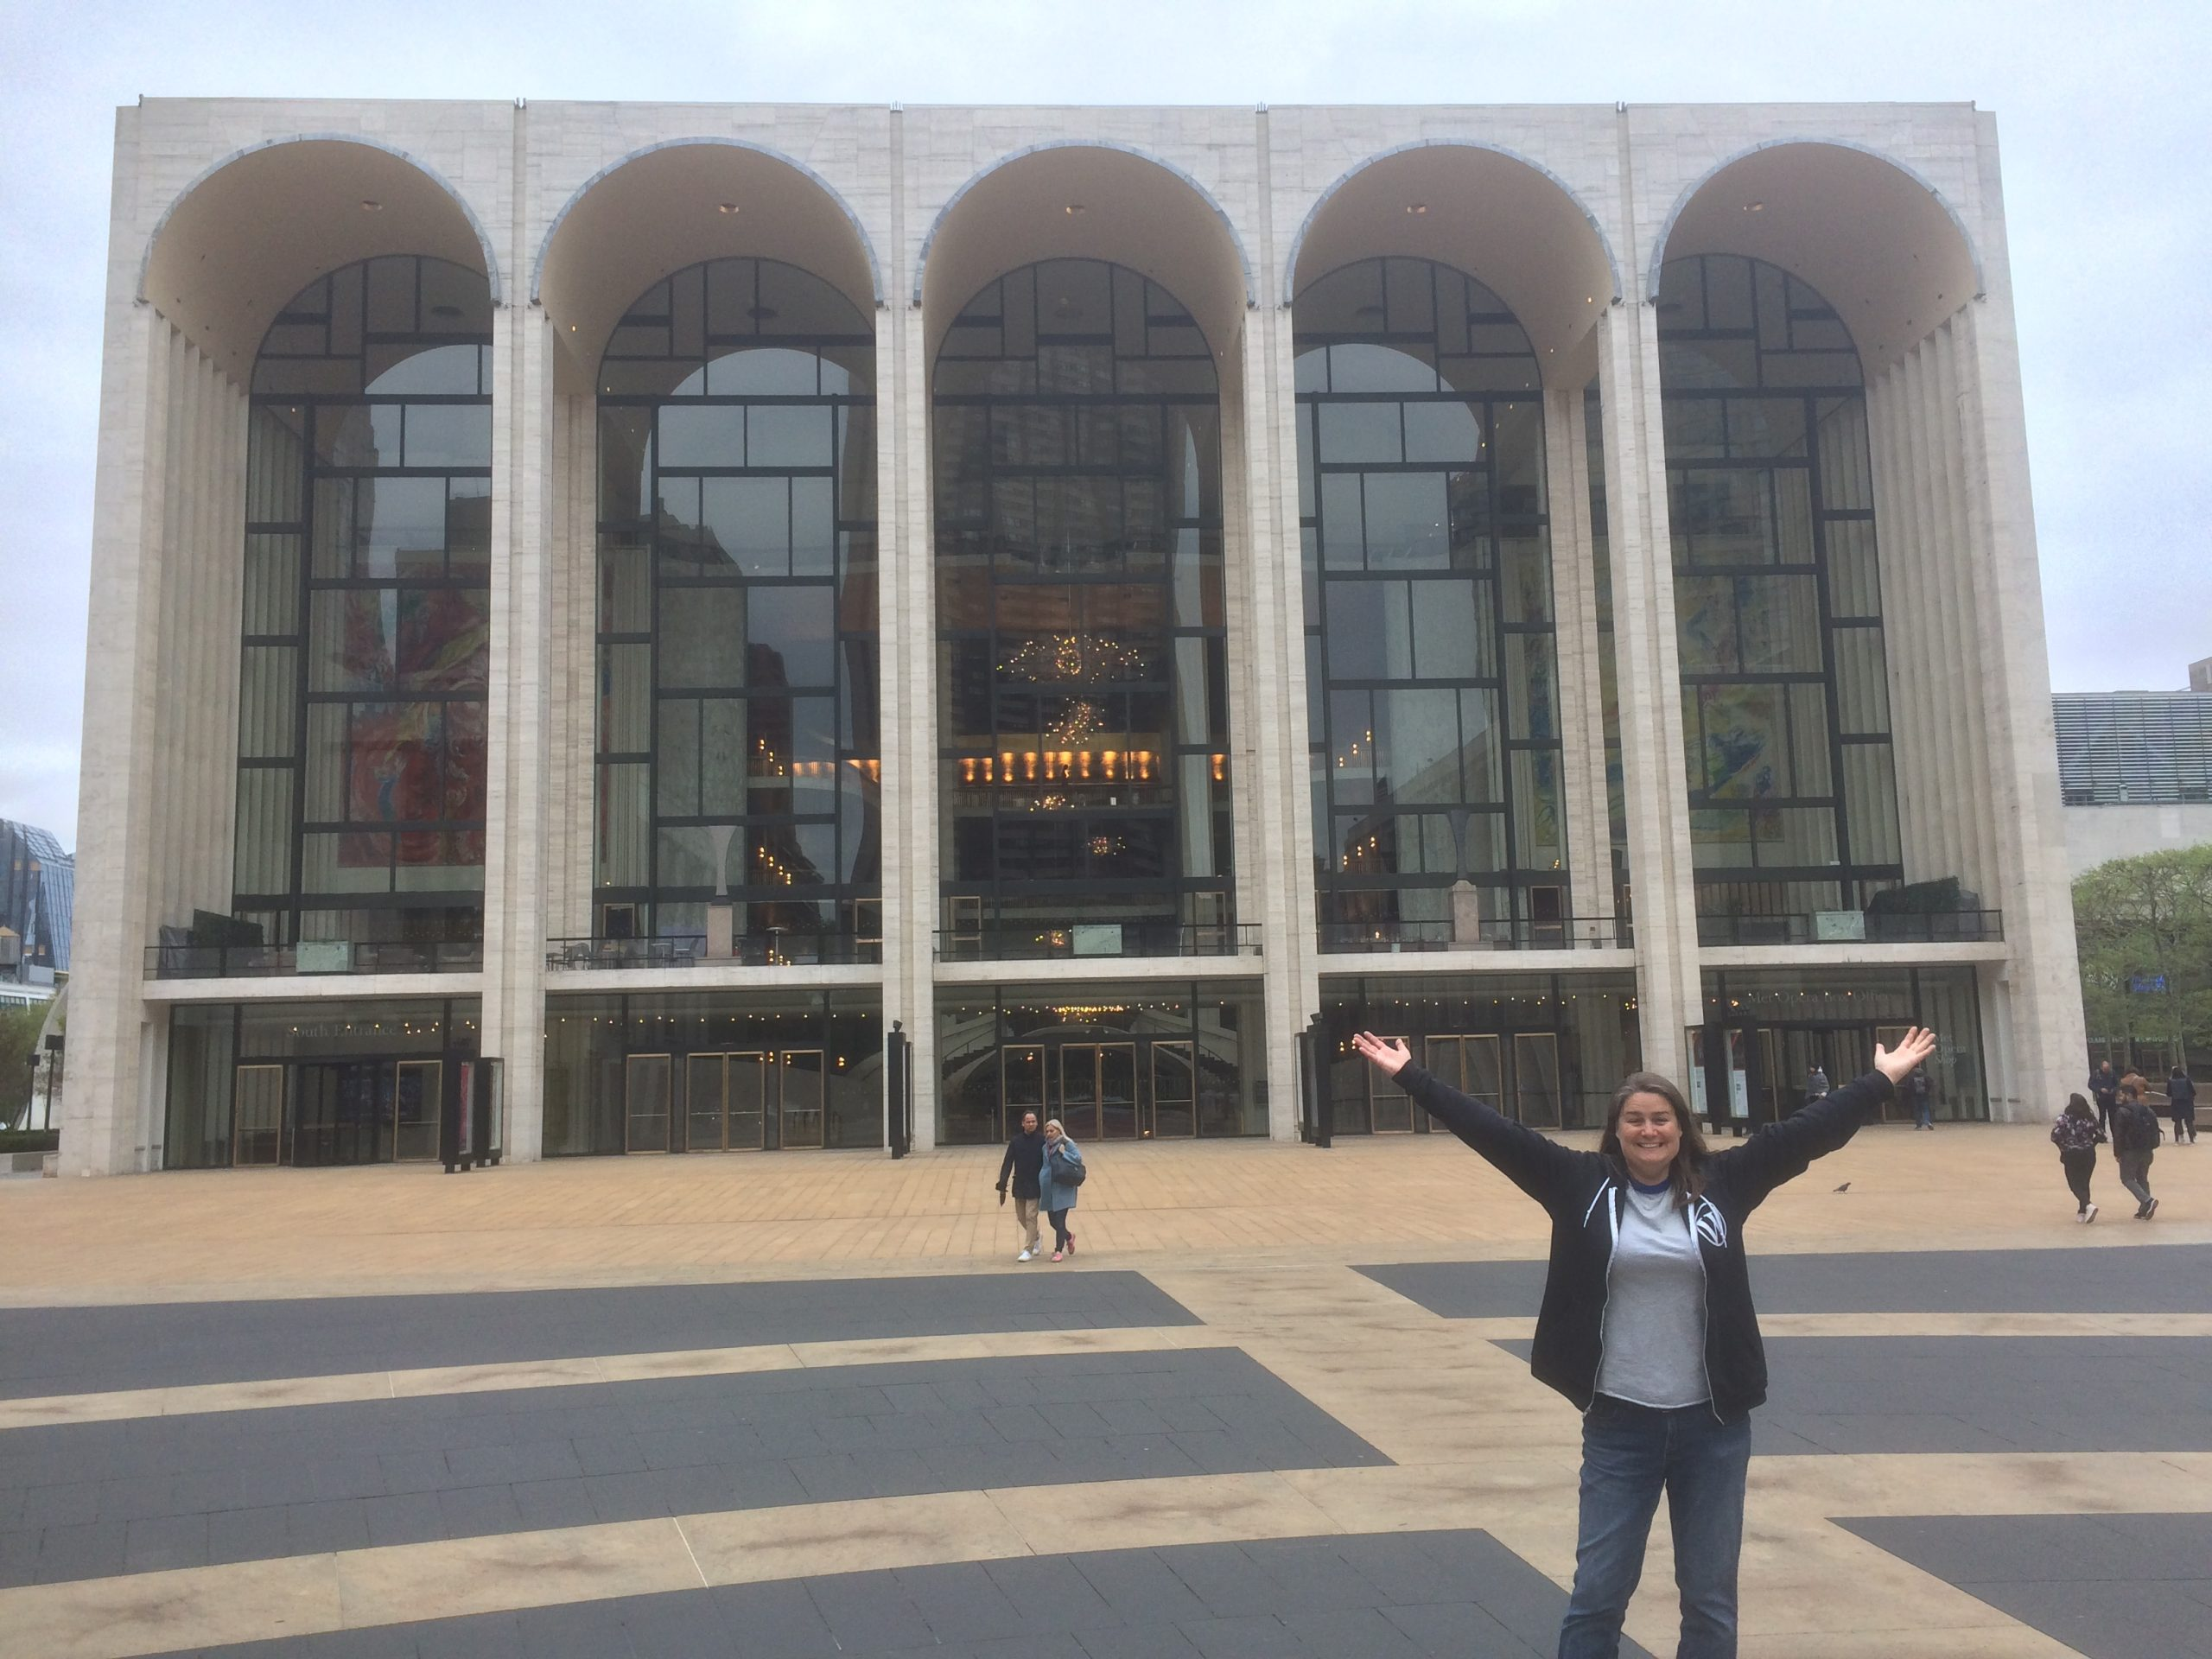 Me standing in front of the Metropolitan Opera House with arms wide open